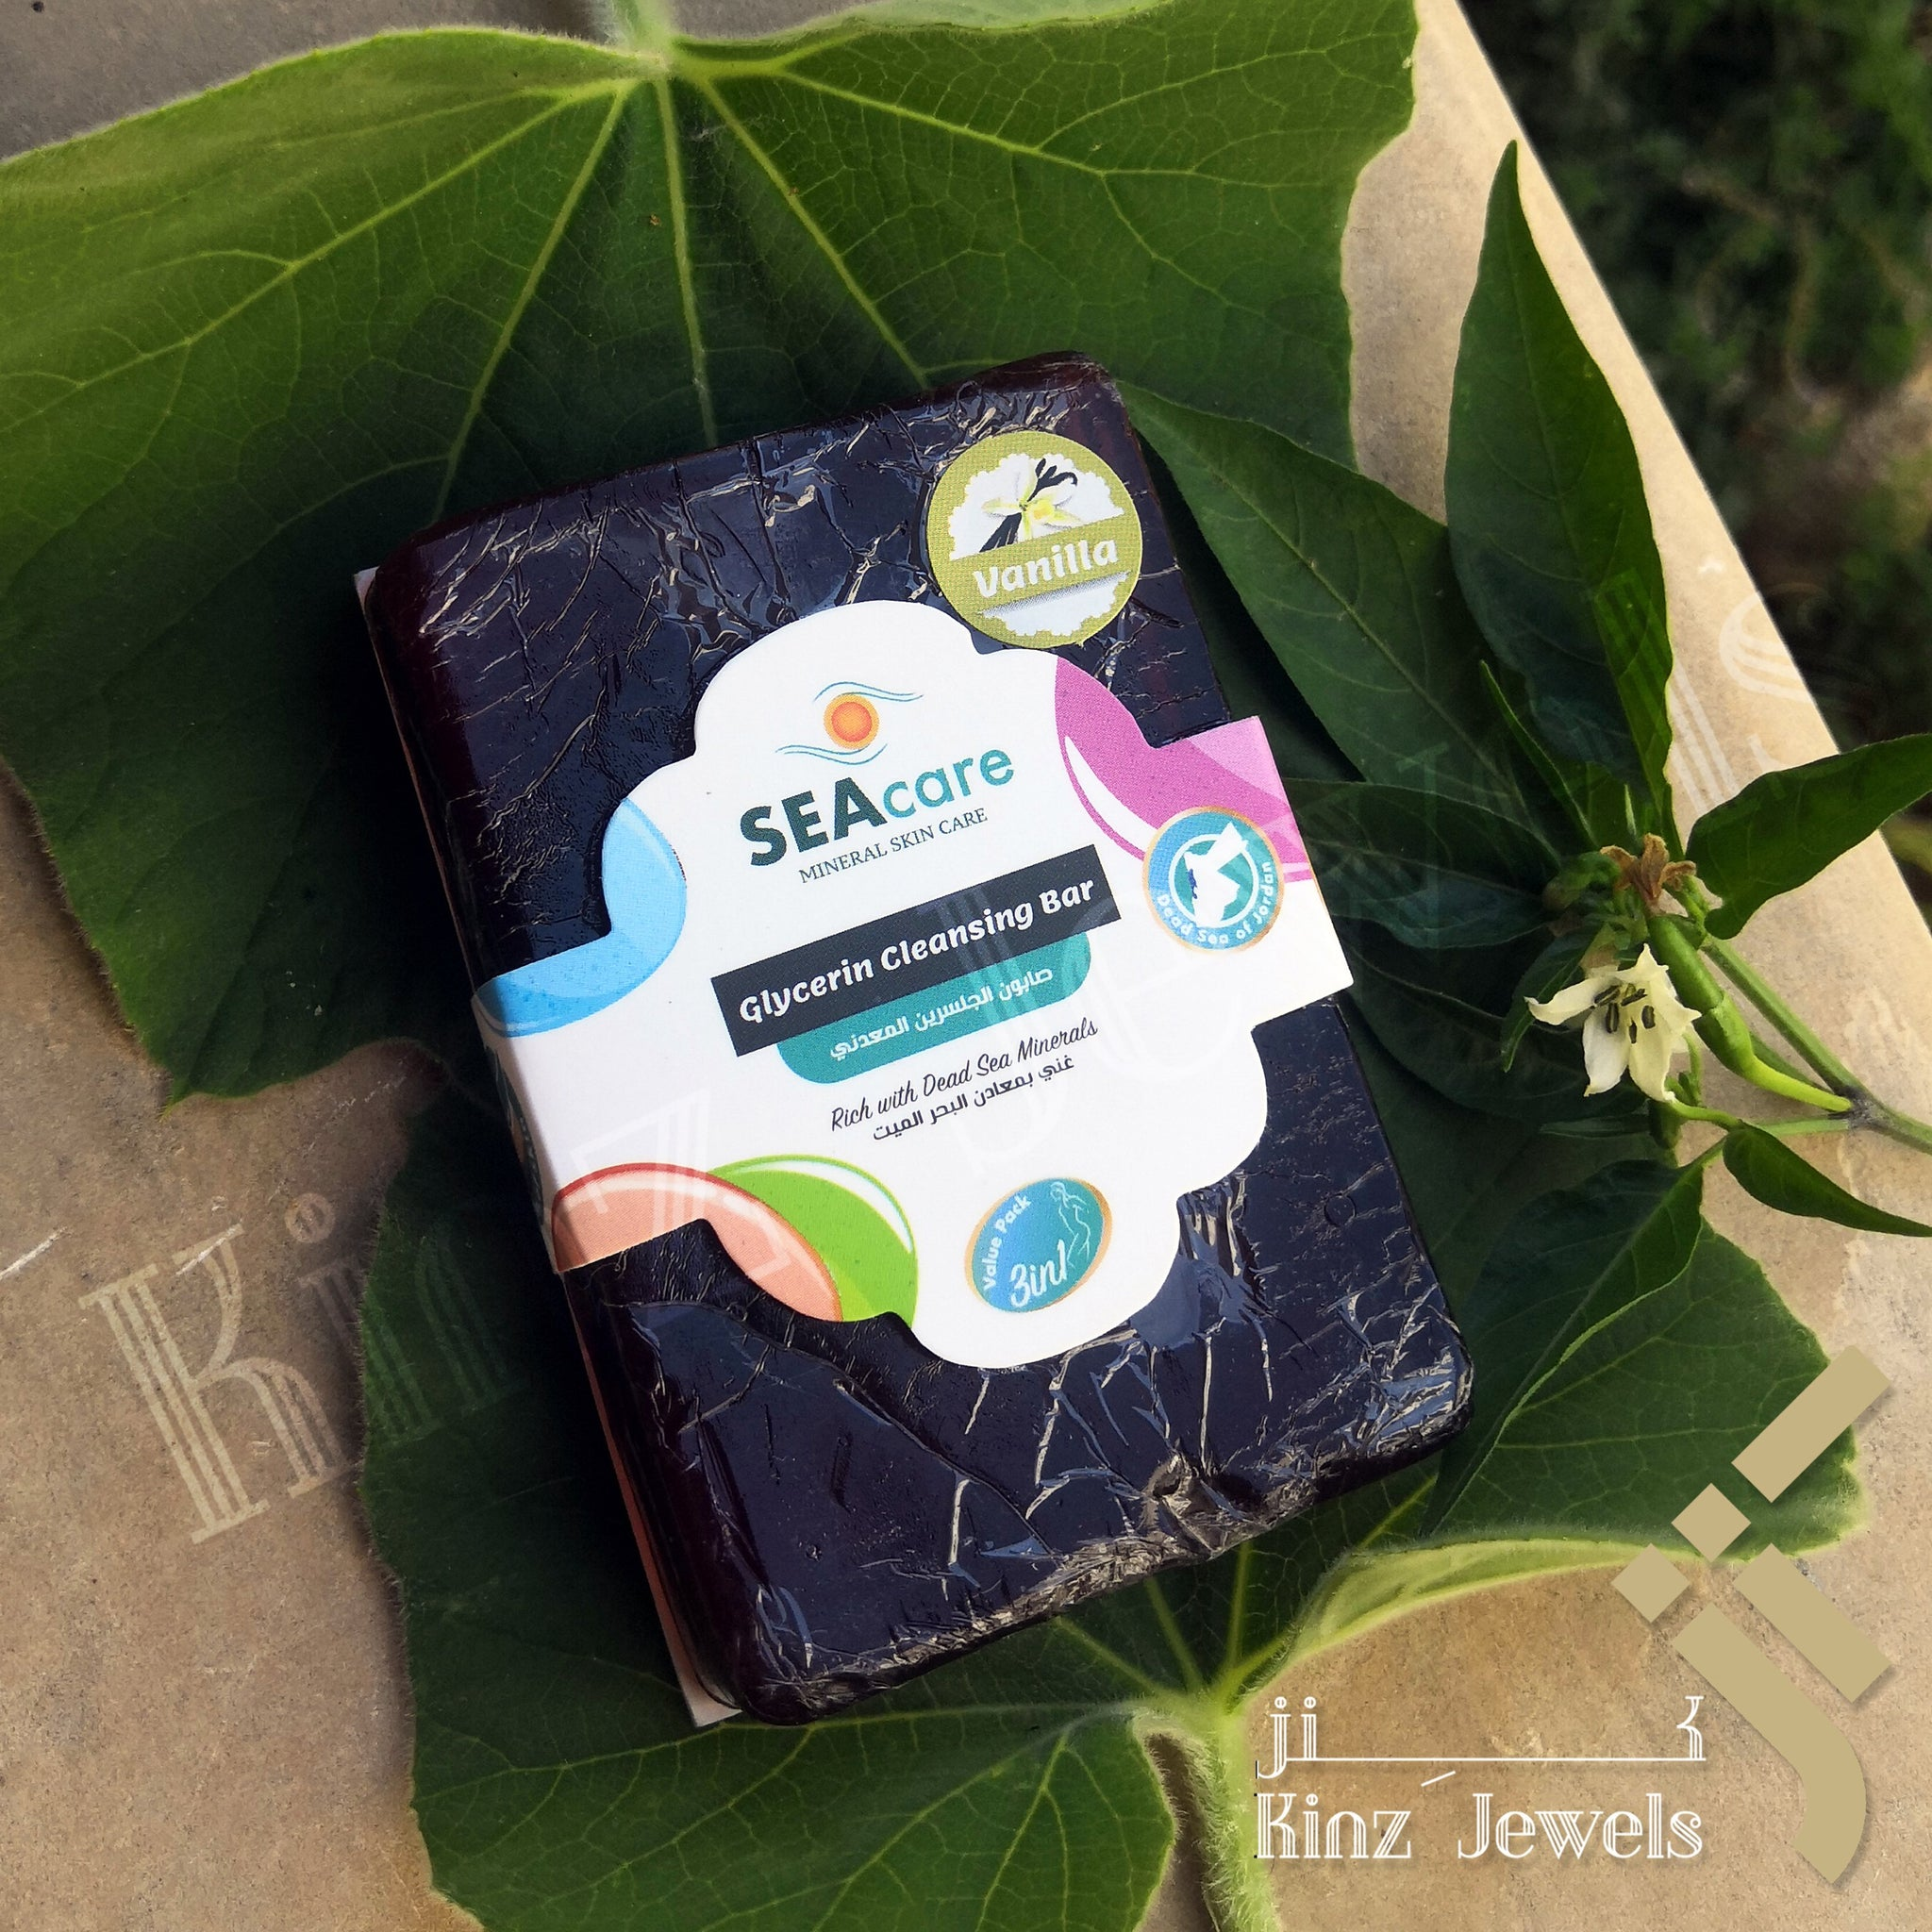 kinzjewels - Vanilla Dead Sea Minerals Glycerin Cleansing Bar